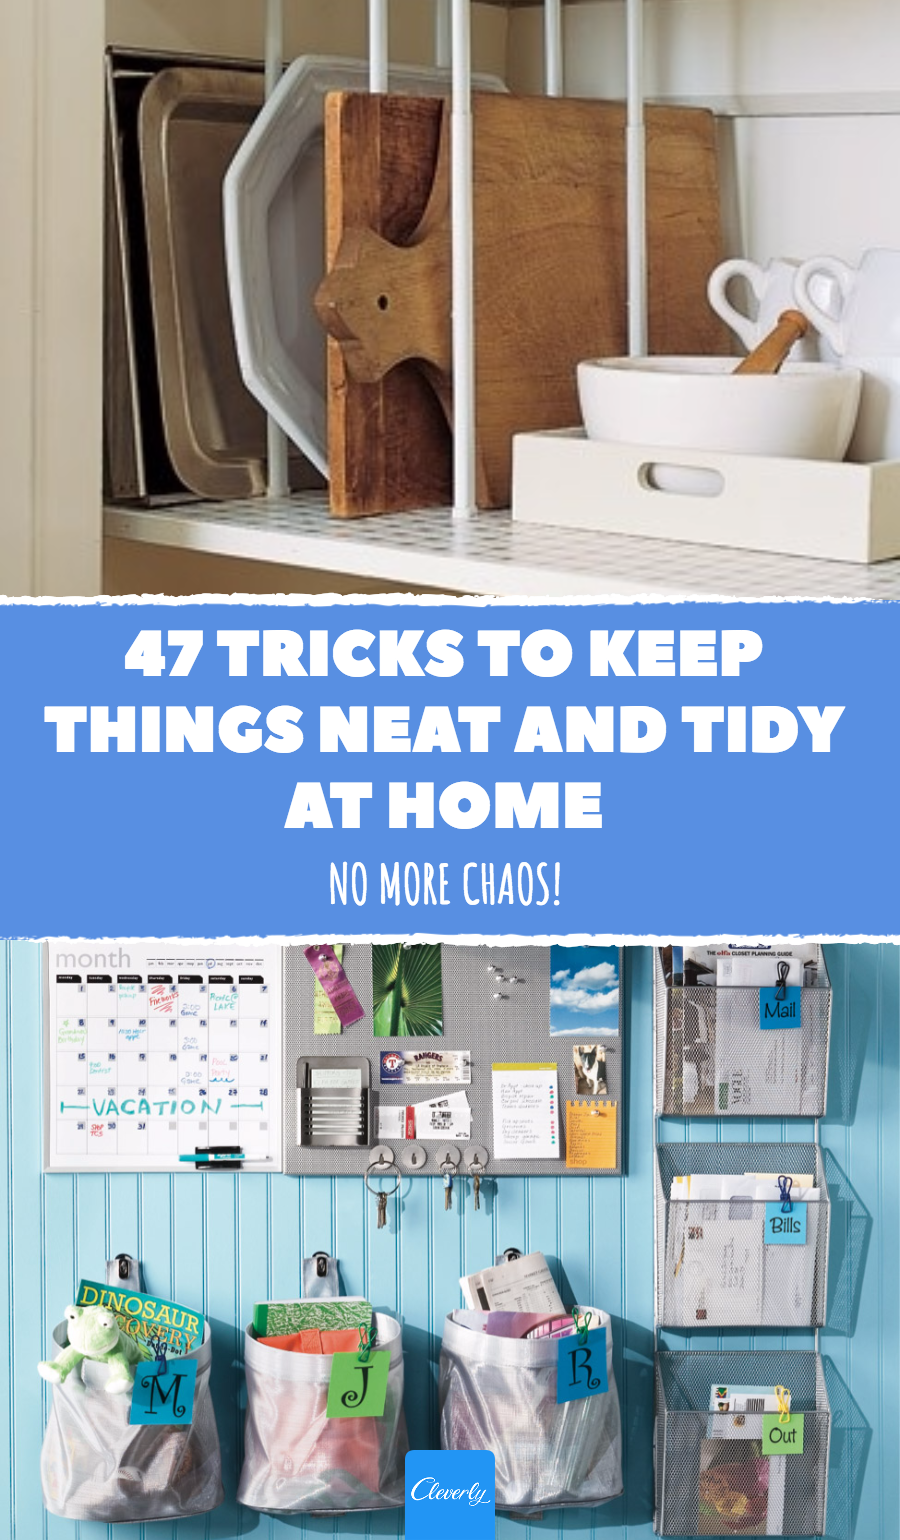 Captivating 47 Tricks To Keep Things Neat And Tidy At Home